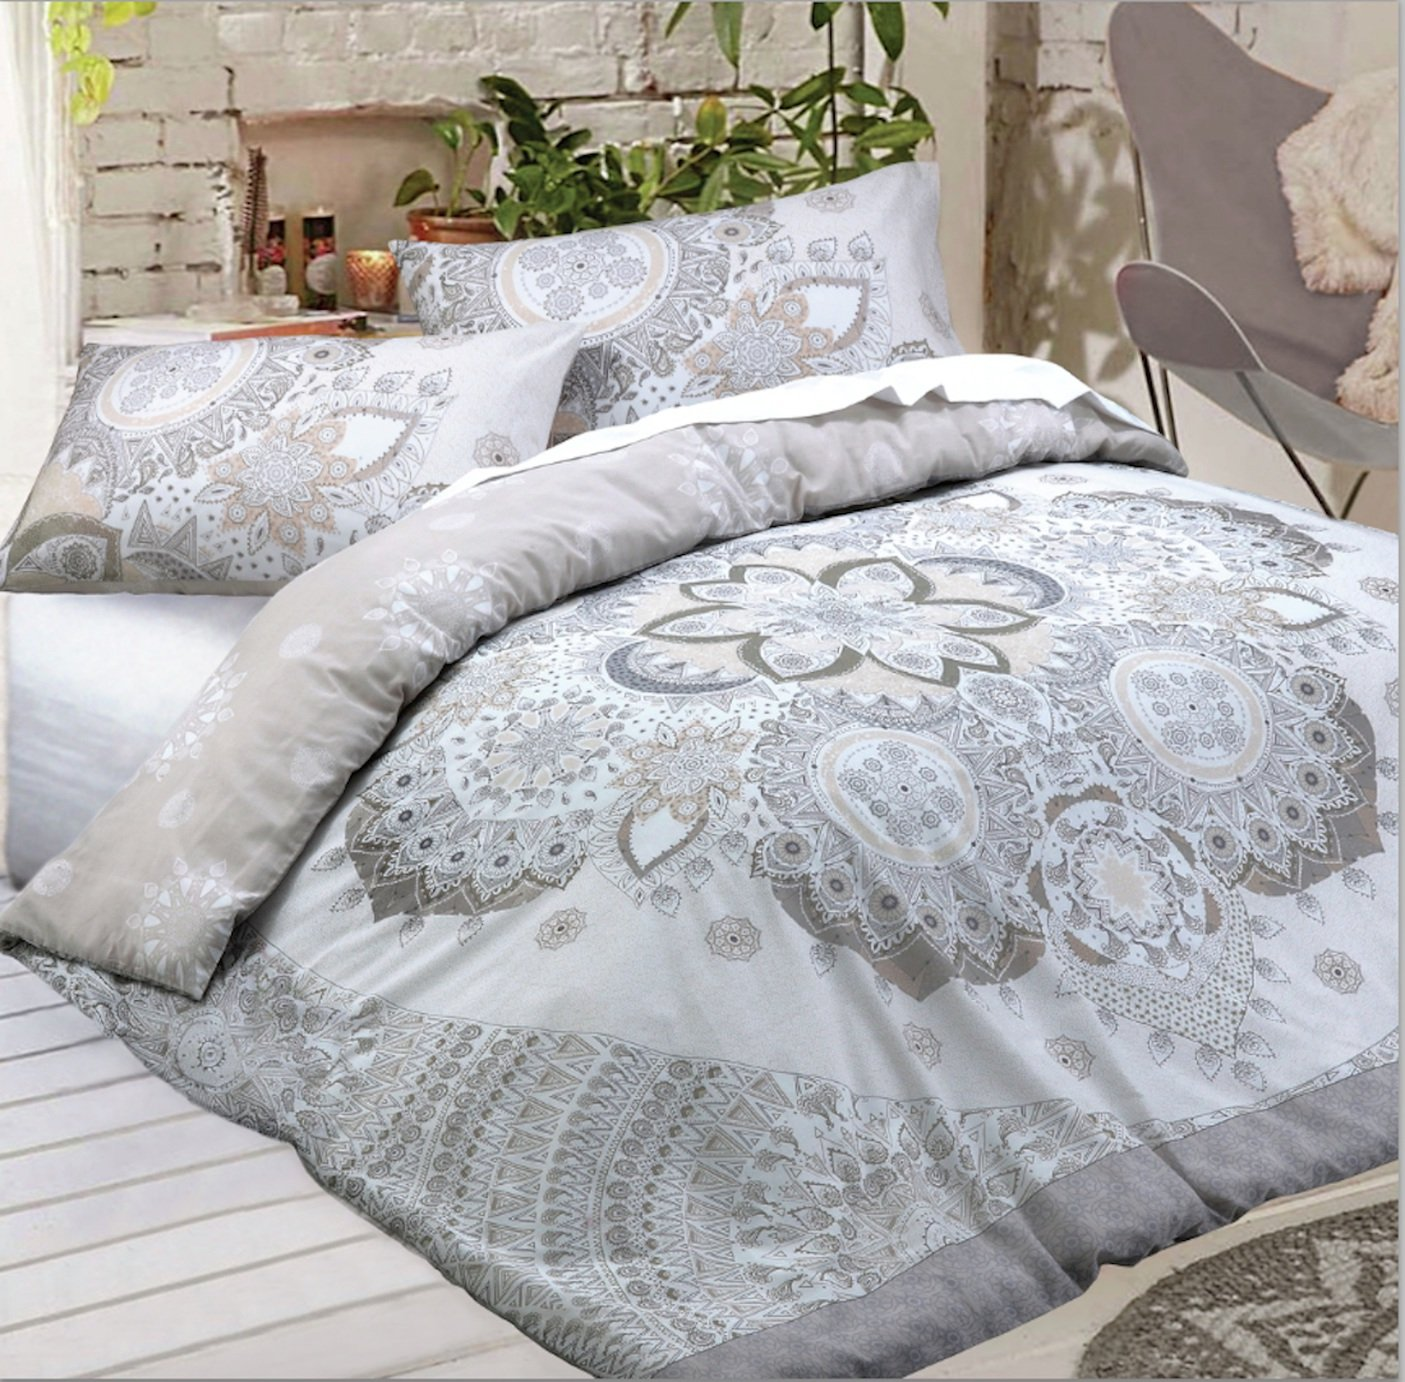 Argos Home Celestrial Mandala Bedding Set - Kingsize